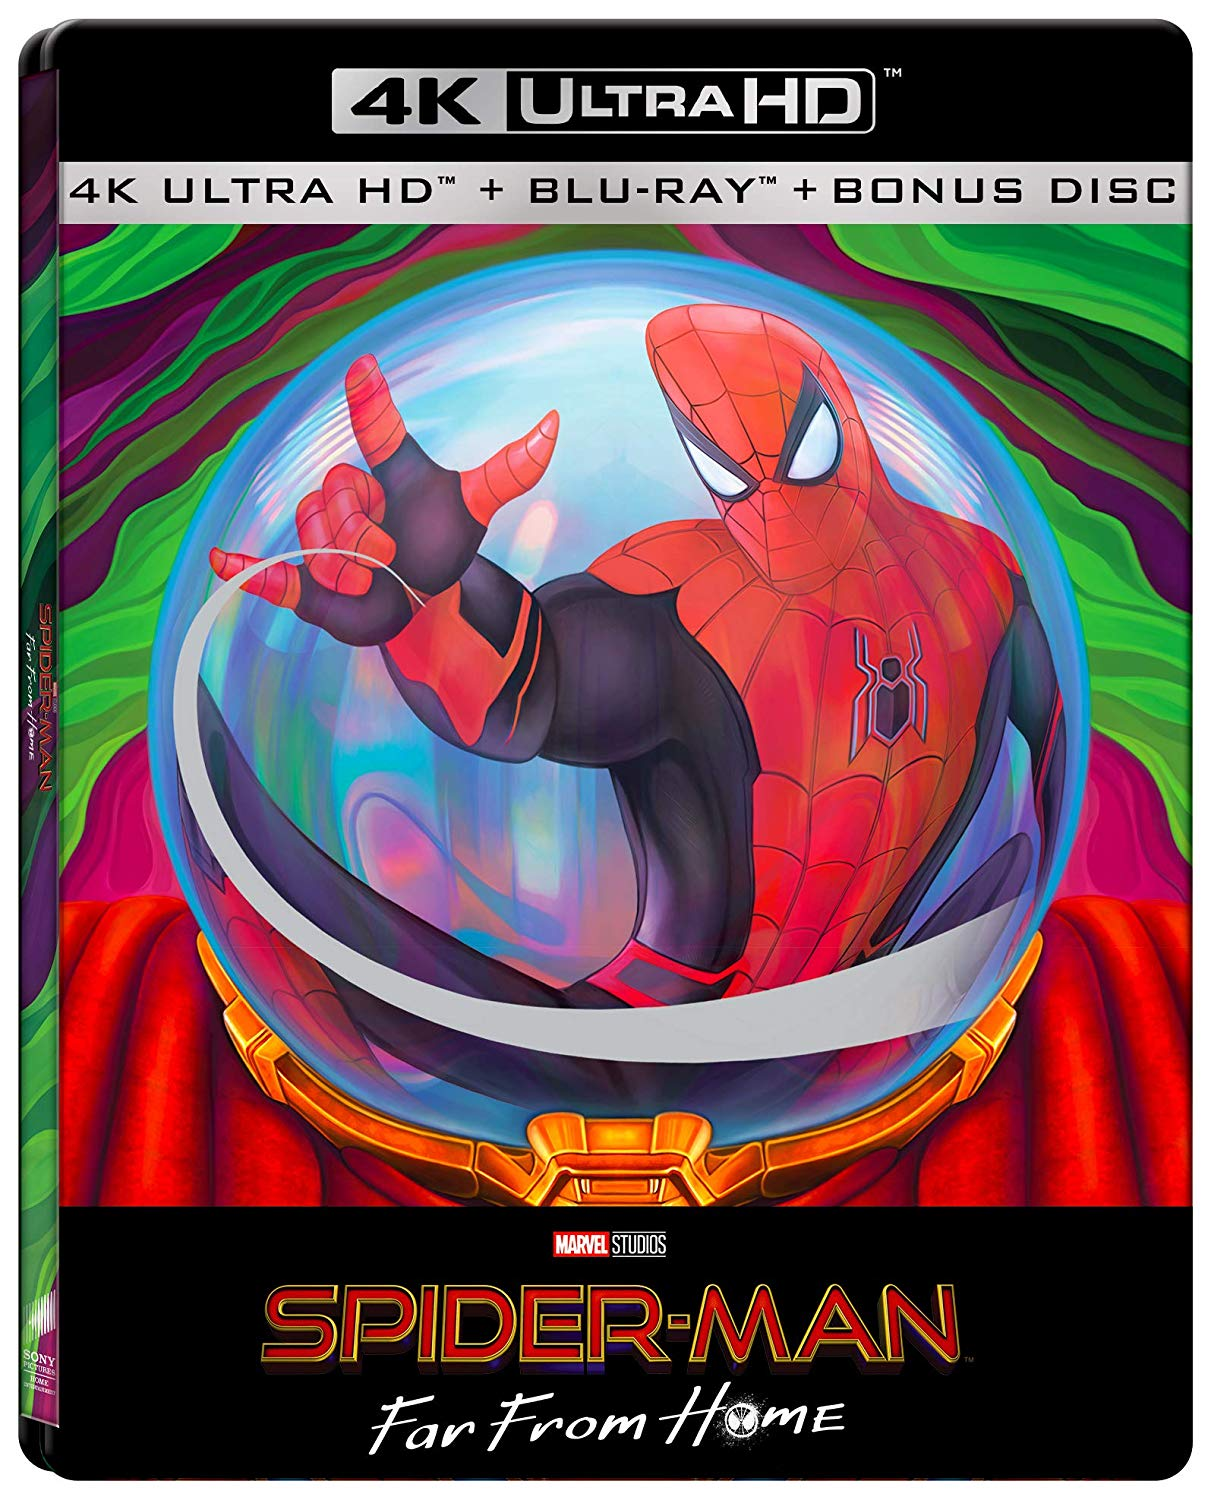 Spider-Man: Far from Home Italian SteelBook front